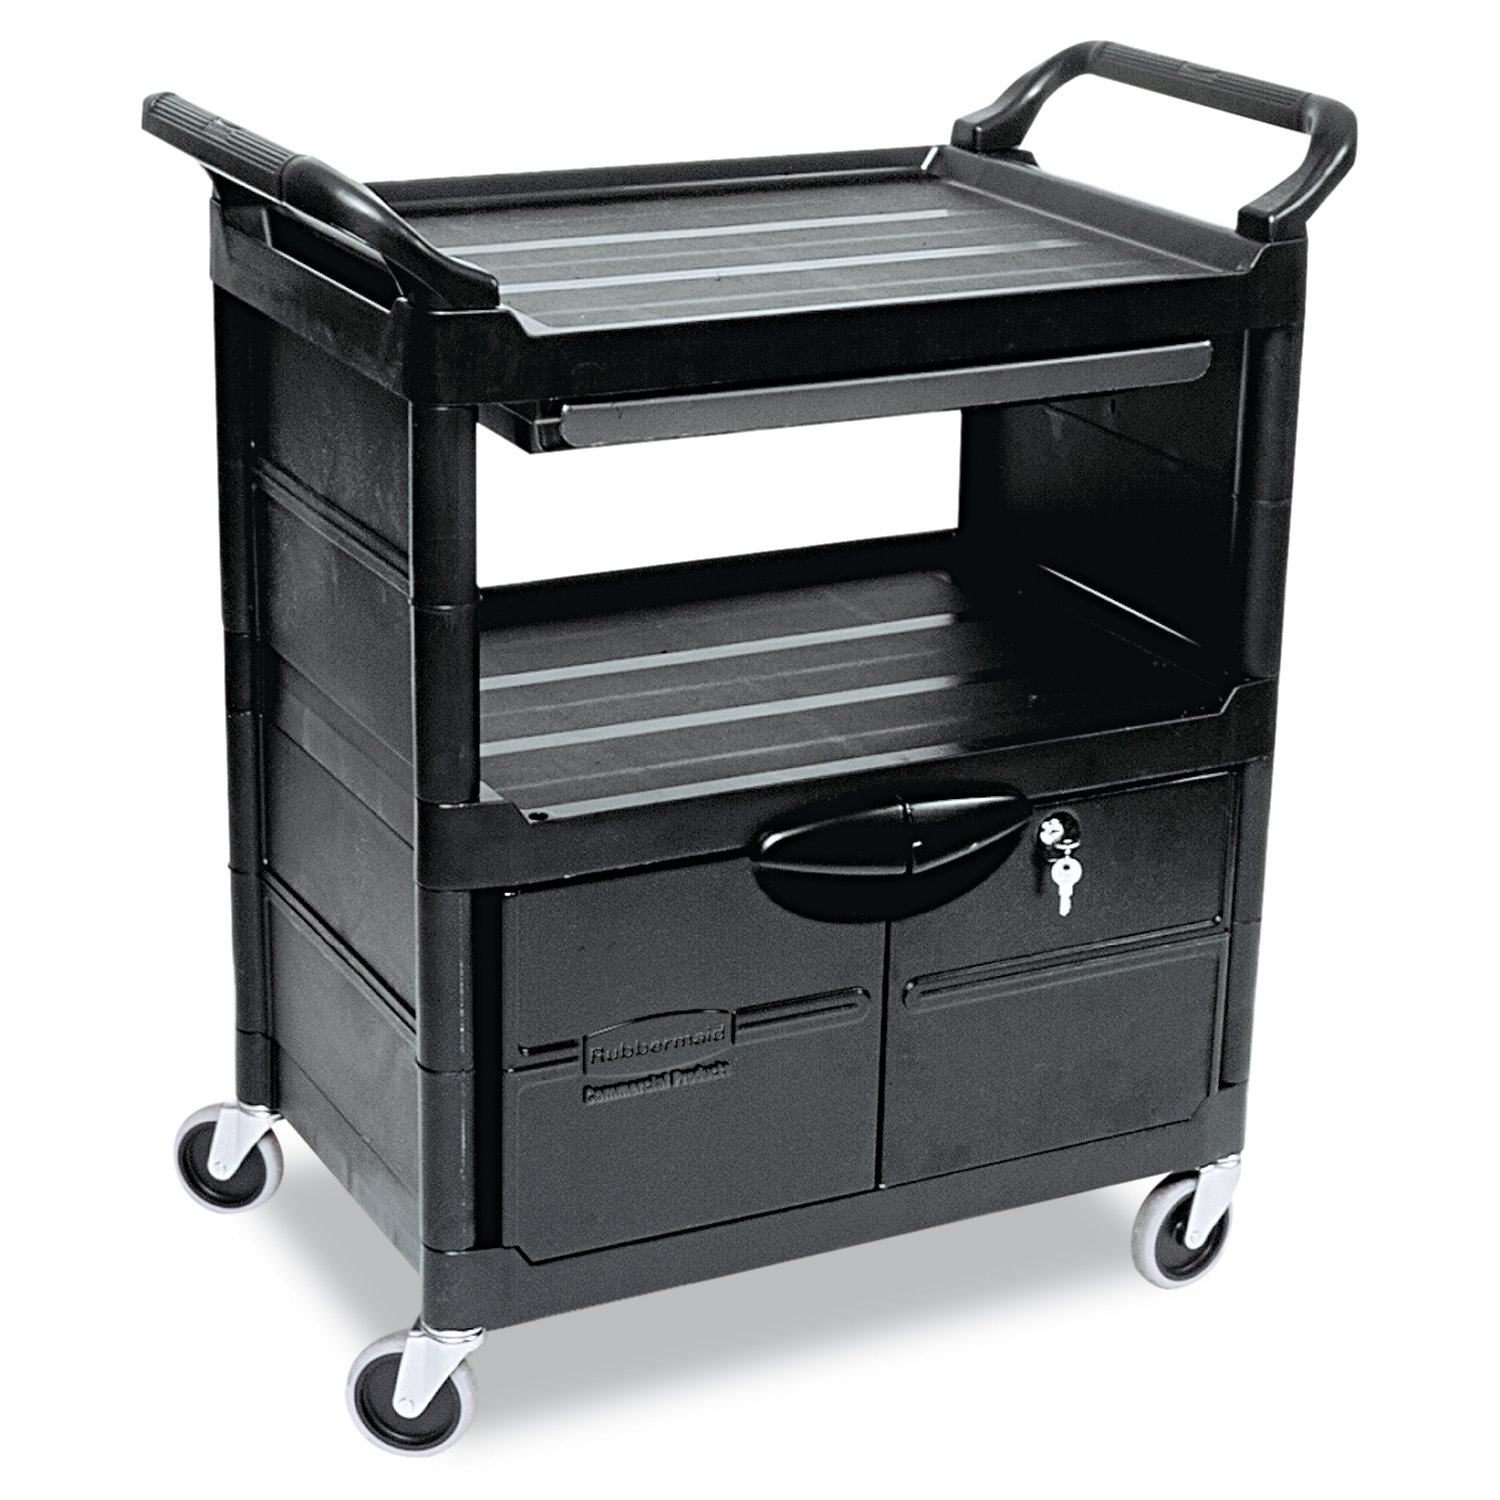 Amazon.com: Rubbermaid Commercial Plastic Service and Utility Cart ...